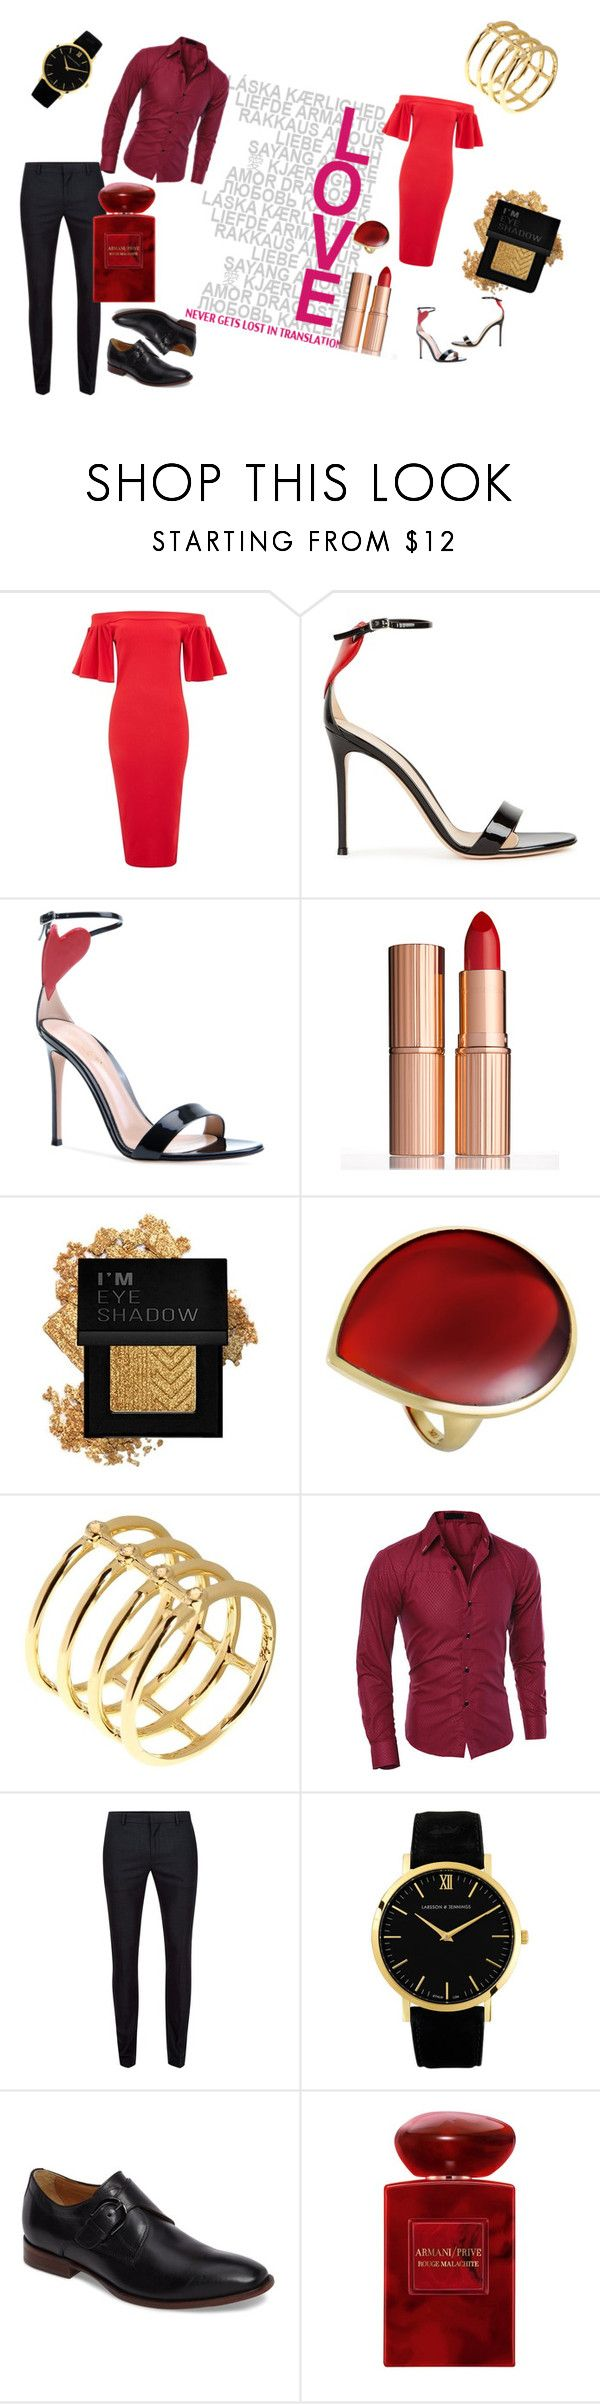 """""""Friday nights with lovers"""" by elfafungian on Polyvore featuring Oh My Love, Gianvito Rossi, Charlotte Tilbury, Forever 21, Ippolita, Elizabeth and James, Topman, Larsson & Jennings, Johnston & Murphy and Armani Beauty"""